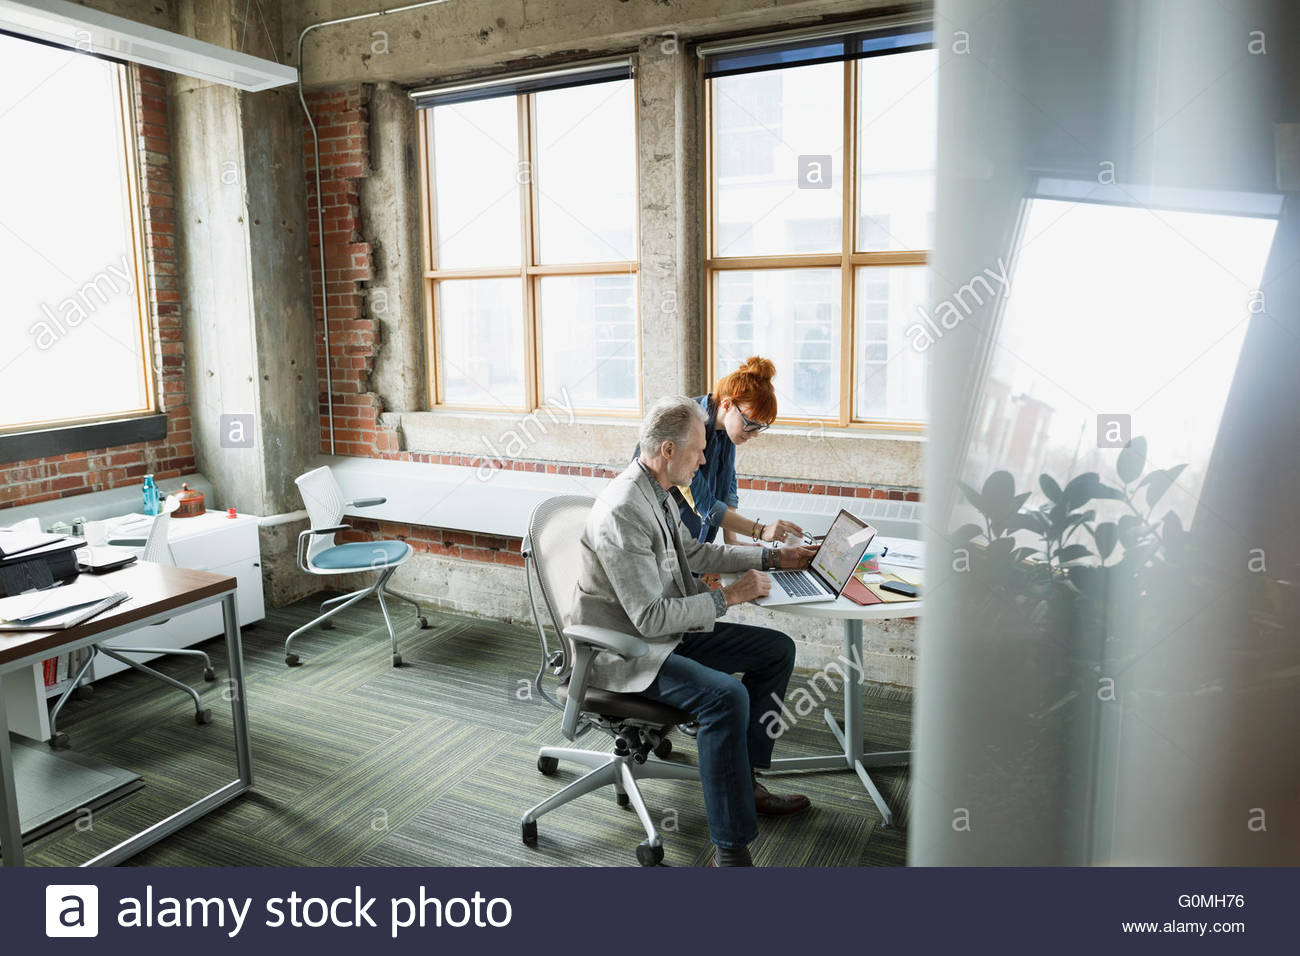 Businessman and businesswoman using laptop in office Photo Stock